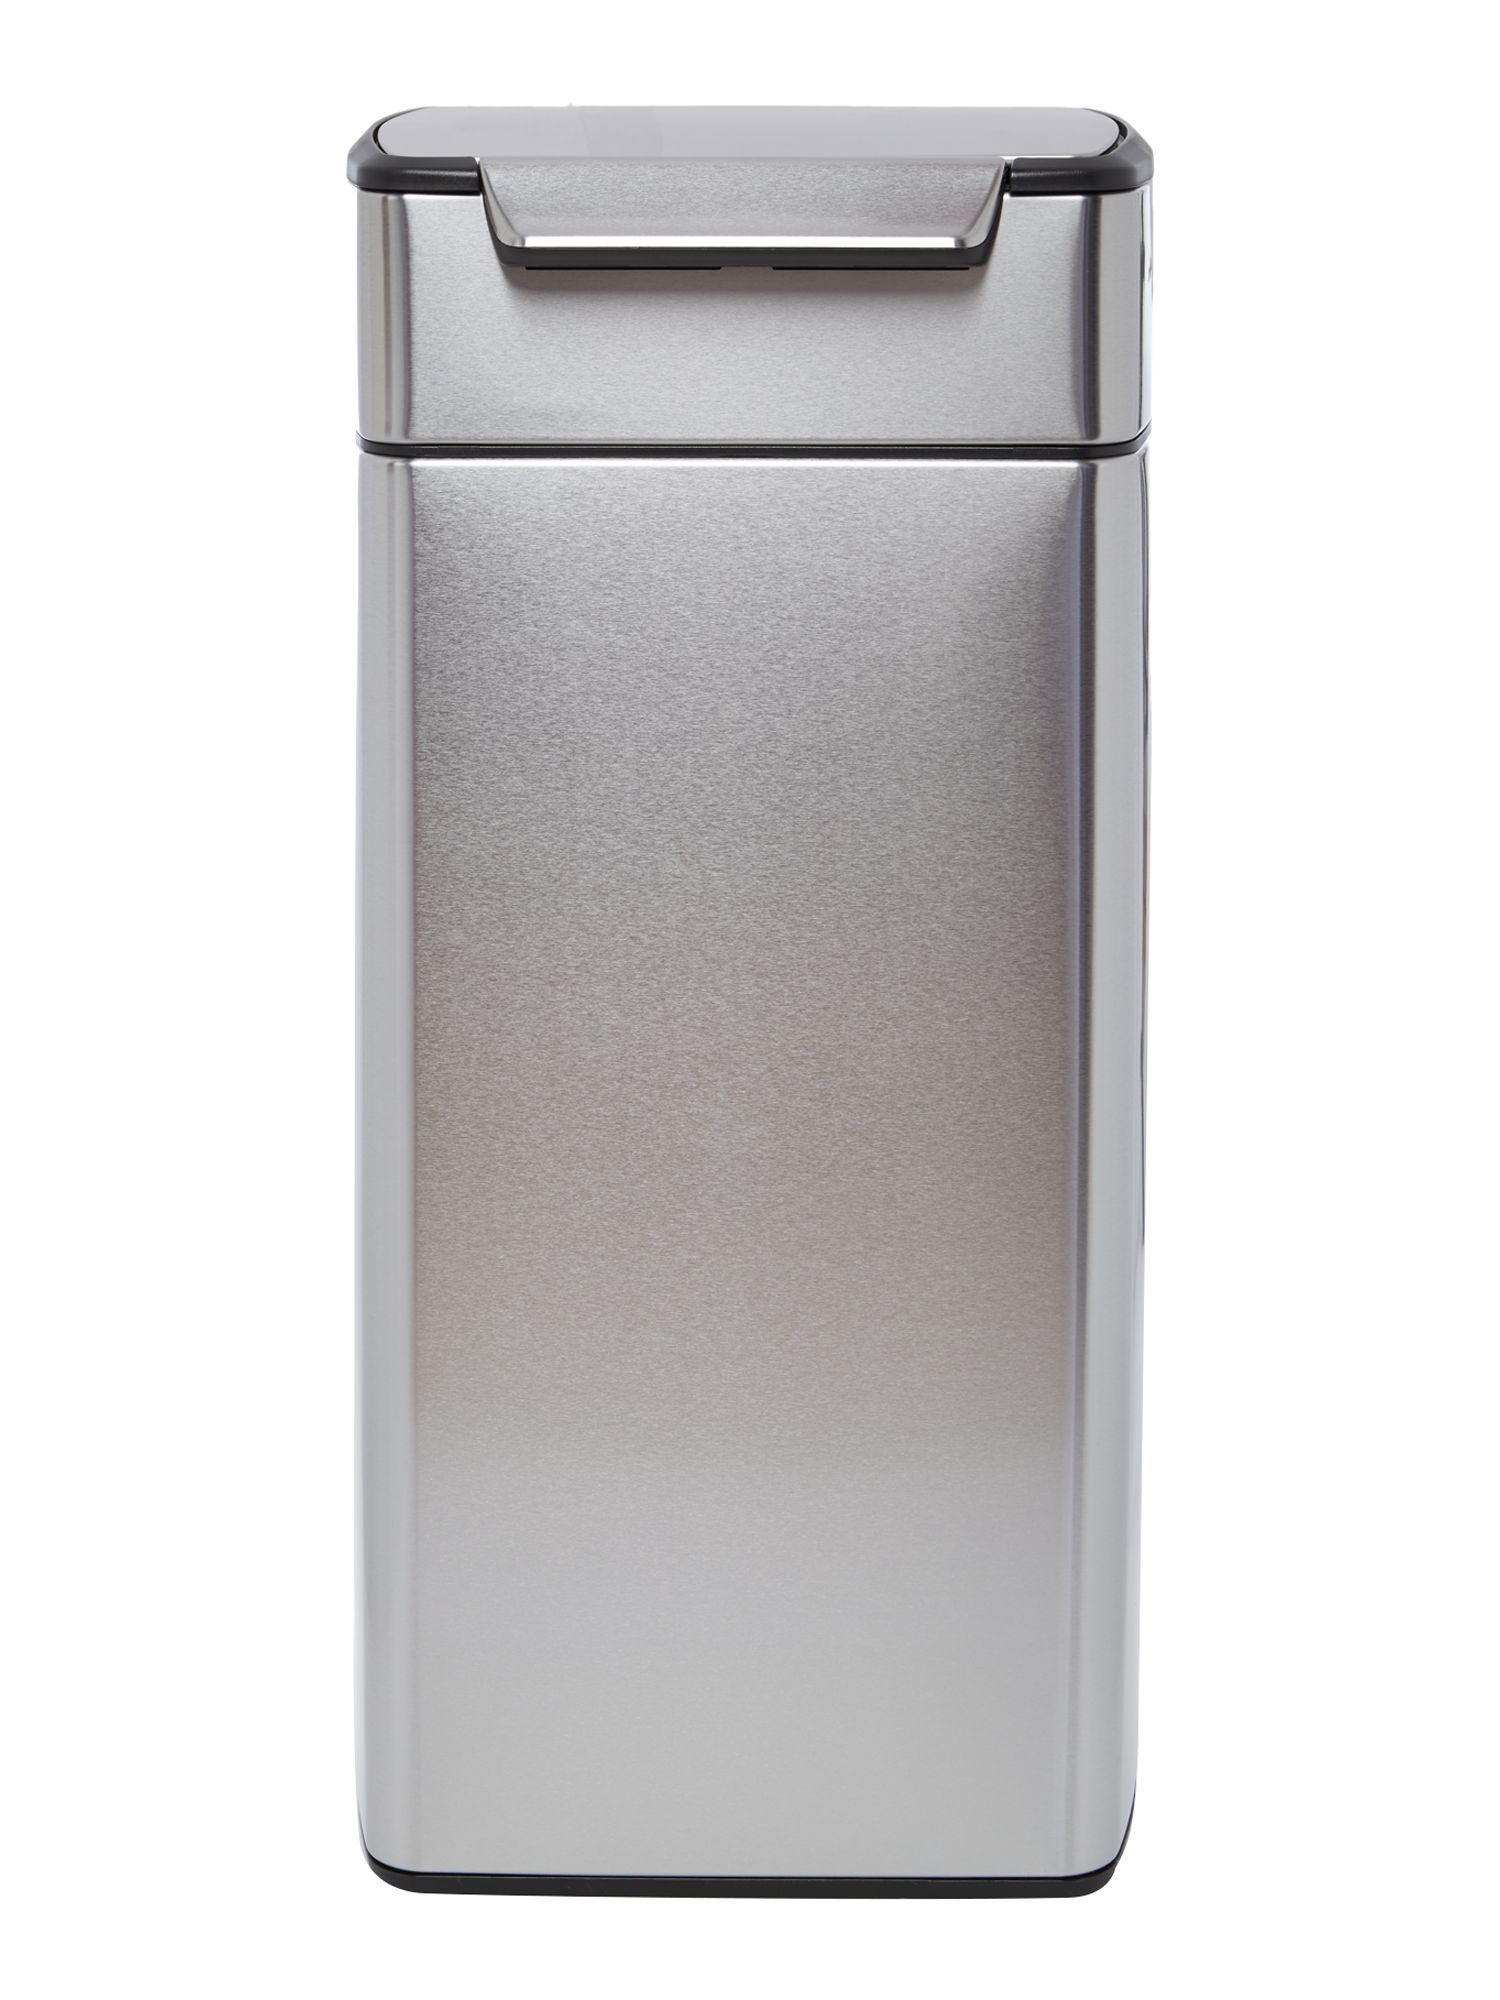 Image of Simplehuman 30 Litre Rectangular Touch Bar Bin